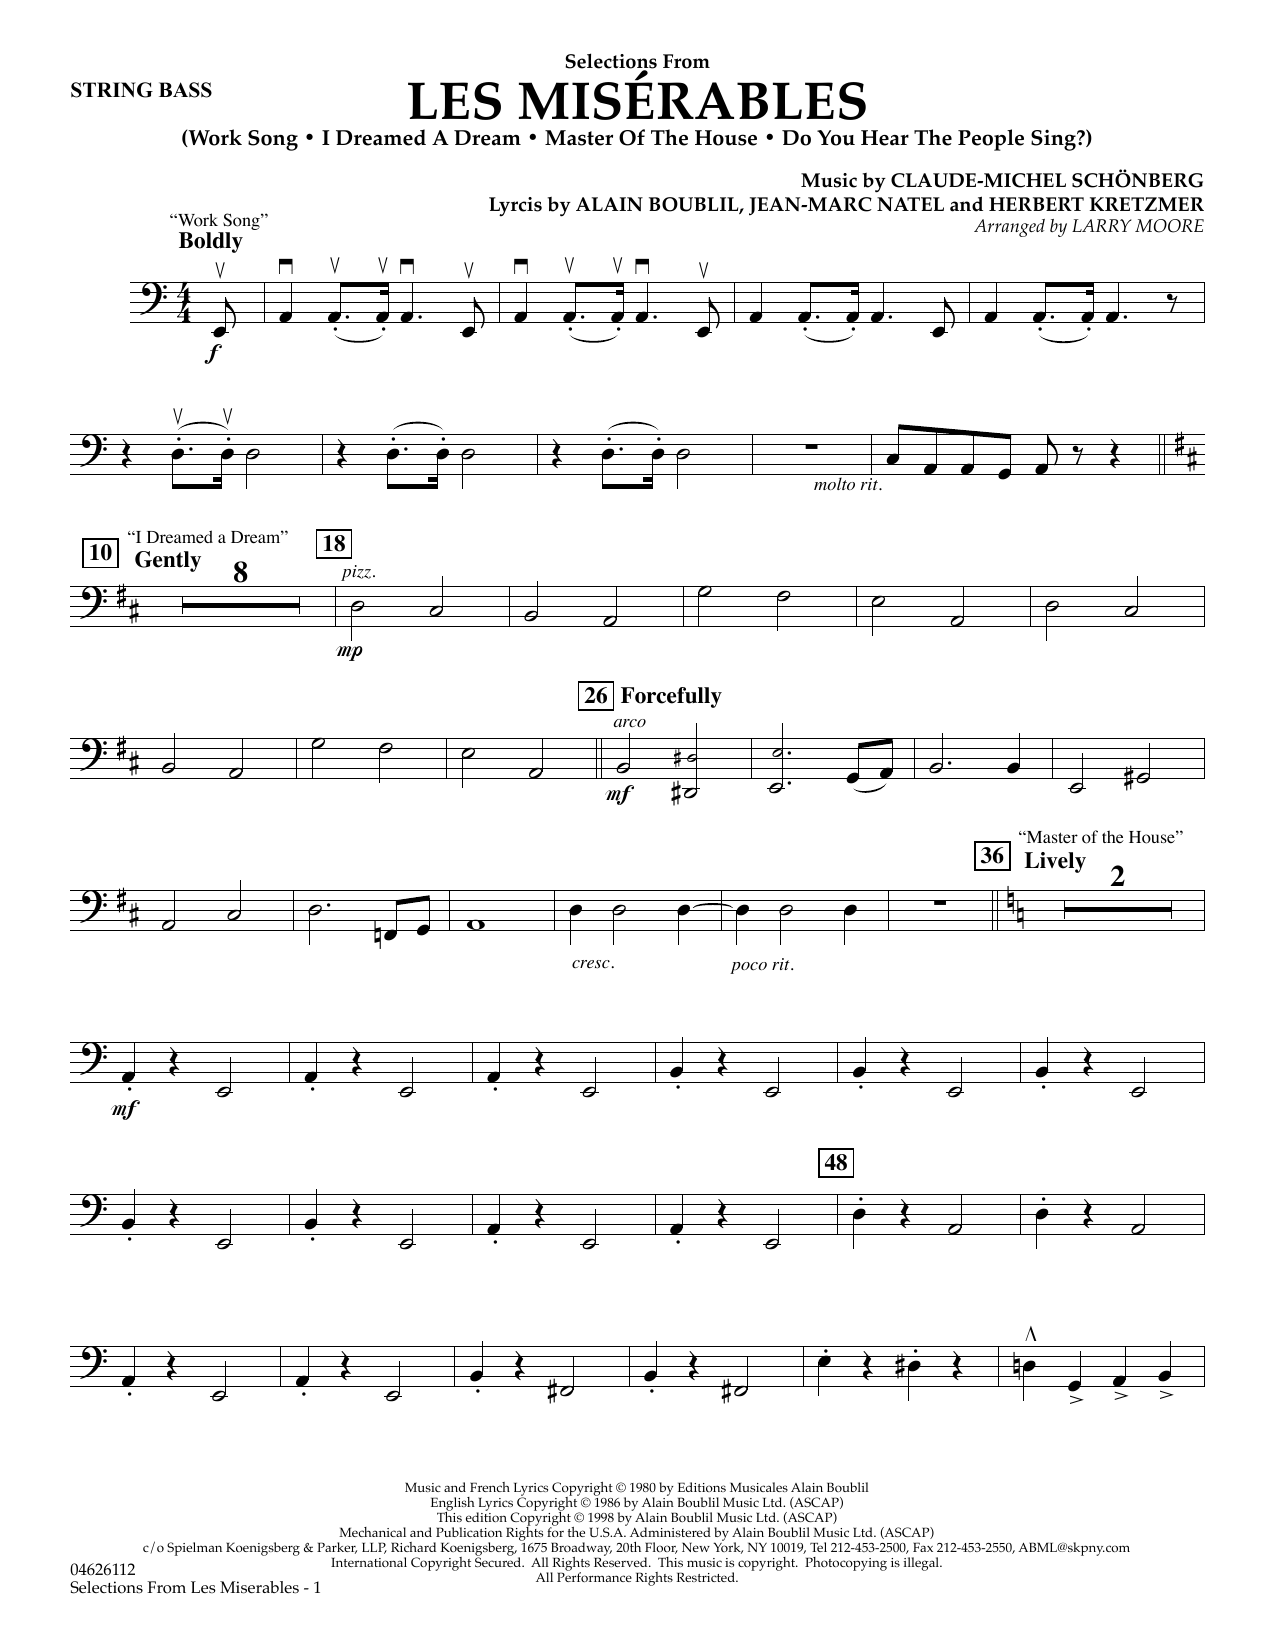 Selections from Les Misérables (arr. Larry Moore) - String Bass (Orchestra)